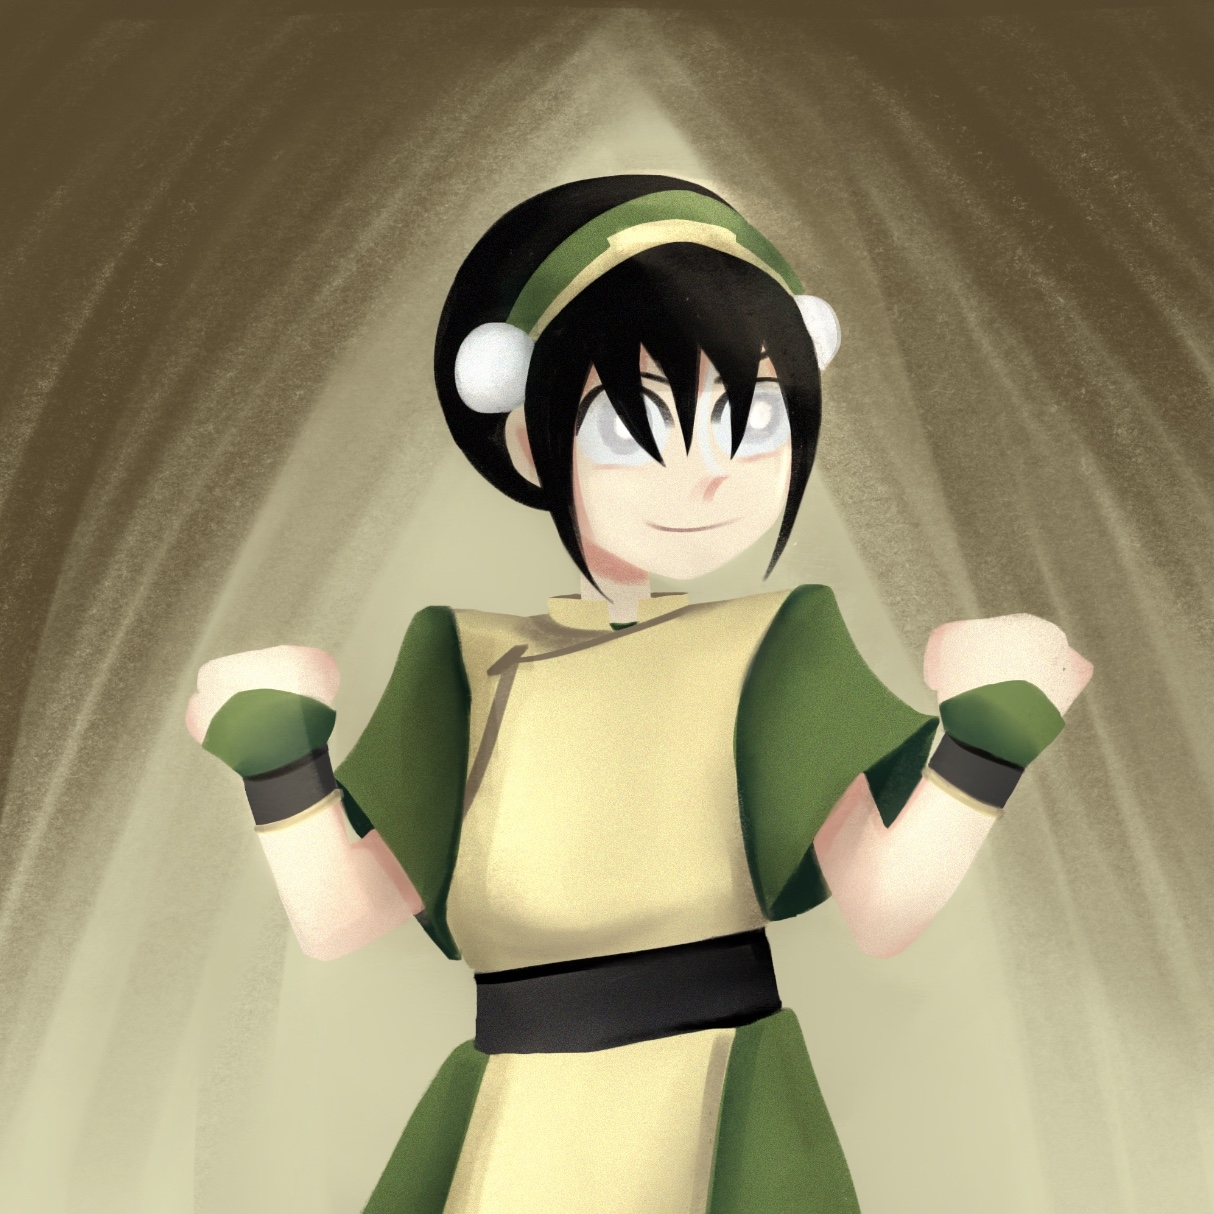 [Fanart] Toph from Avatar: The Last Airbender